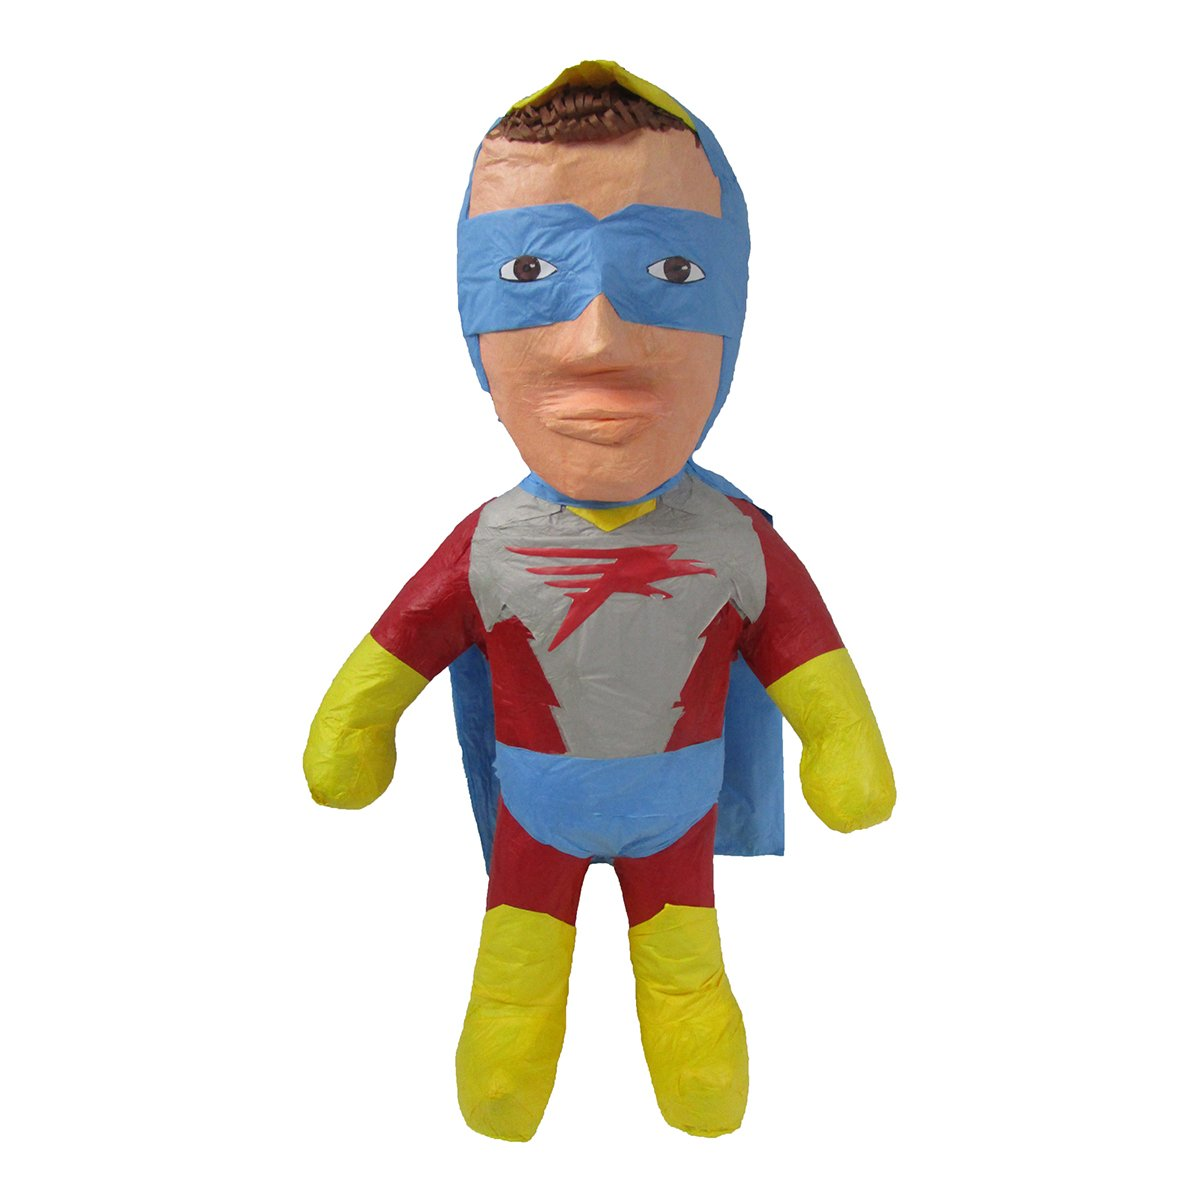 CUSTOM SUPERHERO PINATA